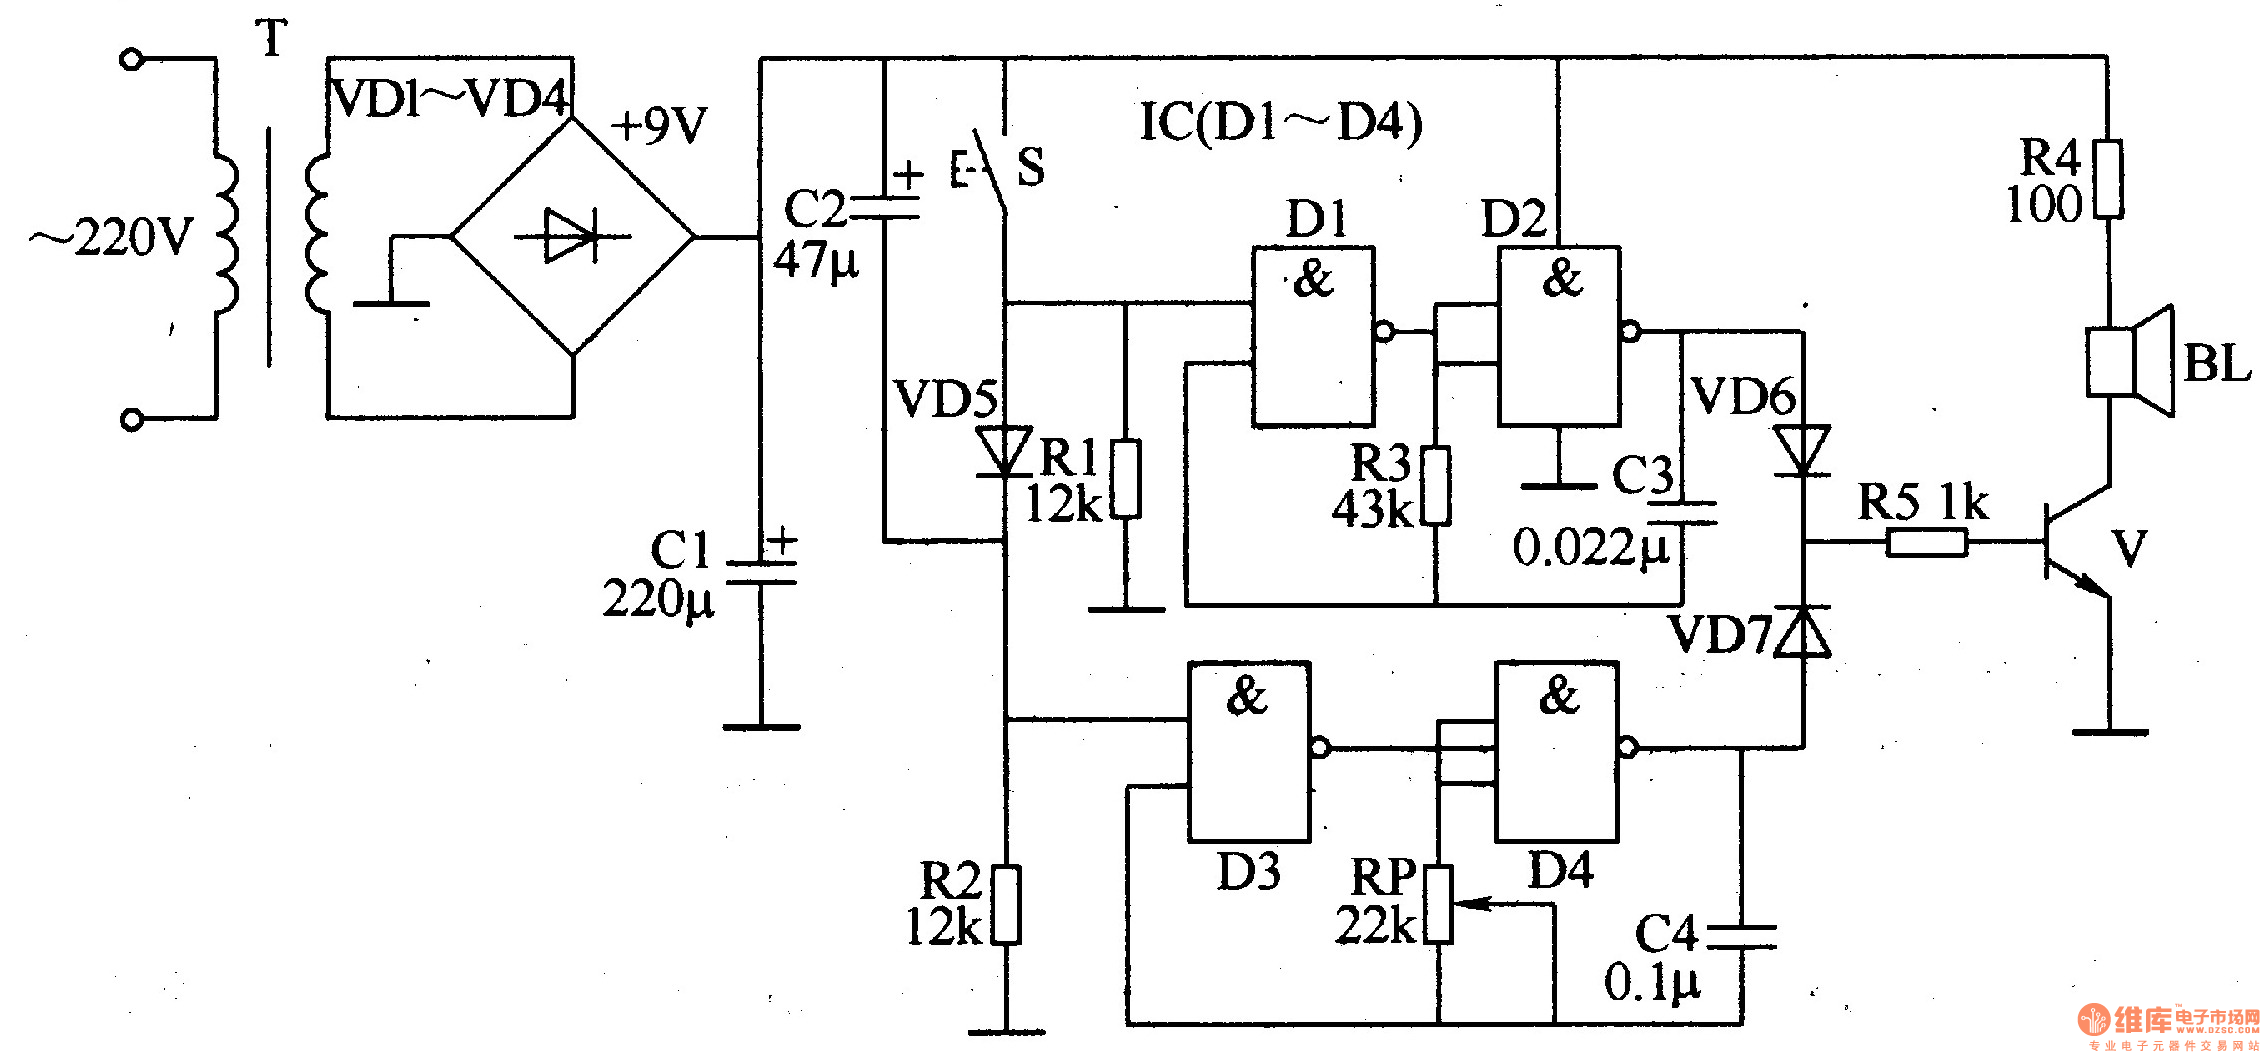 wiring diagram flashing light doorbell   38 wiring diagram